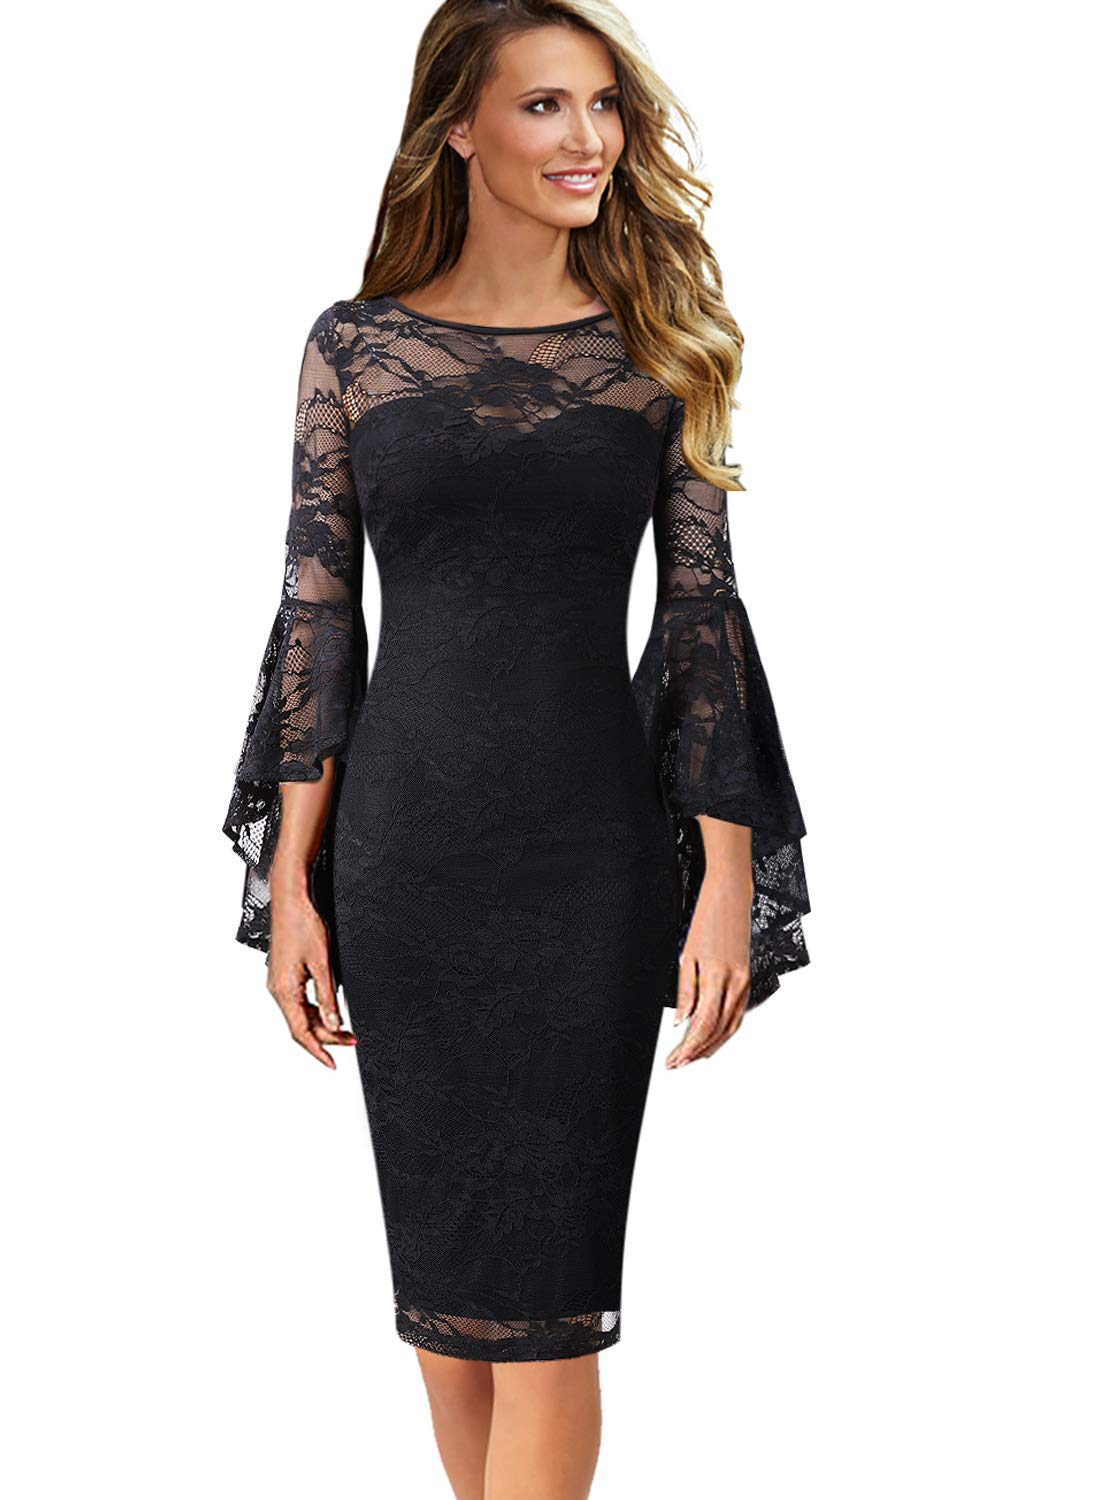 c84a3677d51c VFSHOW Womens Floral Lace Ruffle Bell Sleeves Cocktail Party Sheath Dress  1059 BLK M